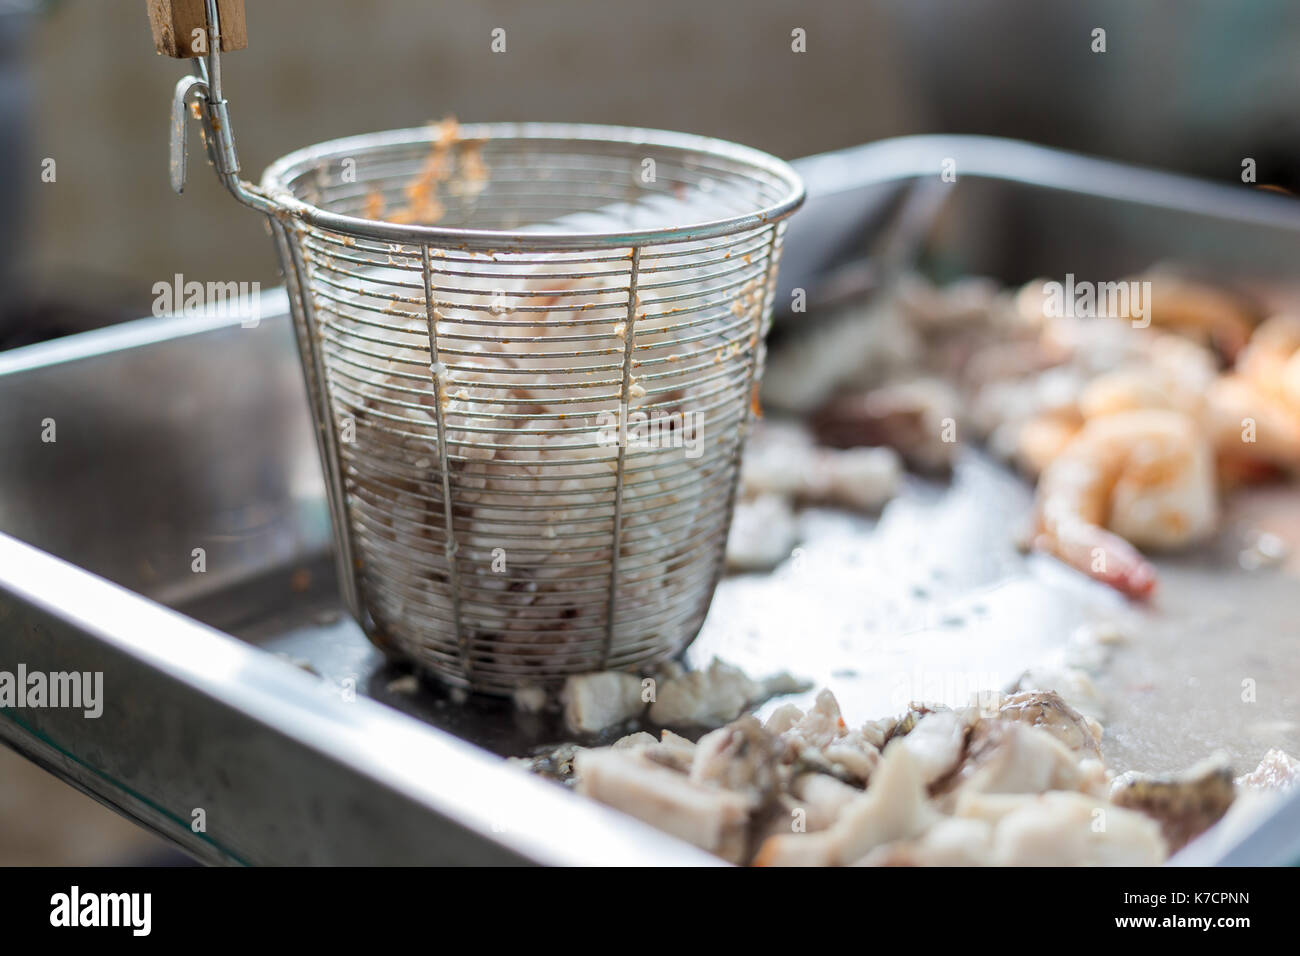 Rice sieve stock photos rice sieve stock images alamy for Piece of fish